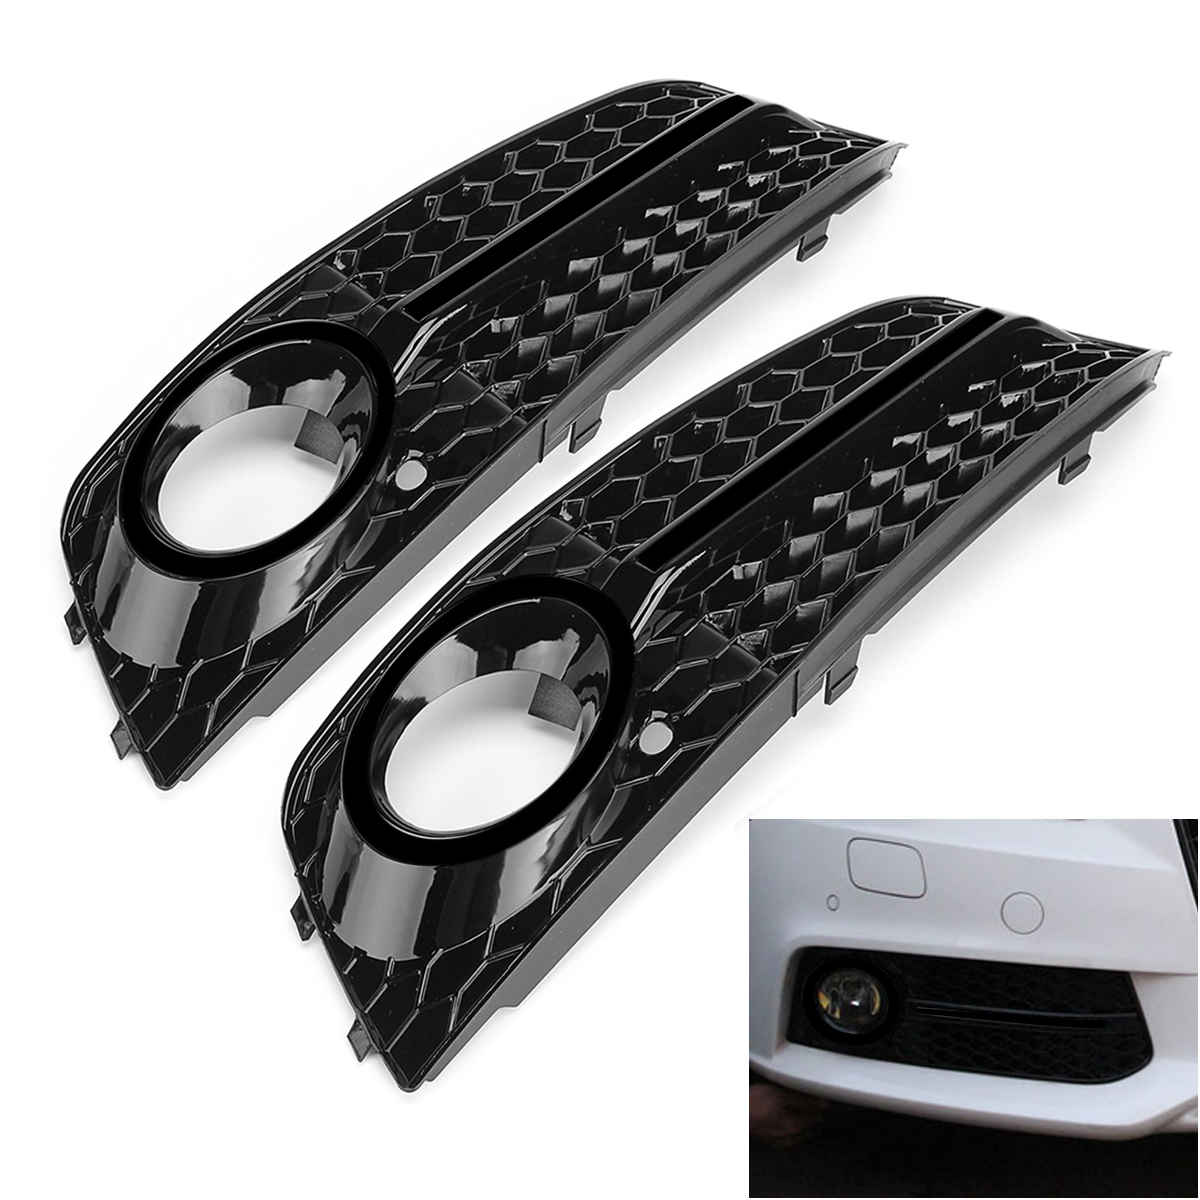 2x Front Bumper Fog Light Cover Trim Mesh Grille For Audi A4 B8 09-11 STANDARD New For Audi A4 Fog Light Cover Grille Gril ownsun innovative super cob fog light angel eye bumper cover for skoda fabia scout